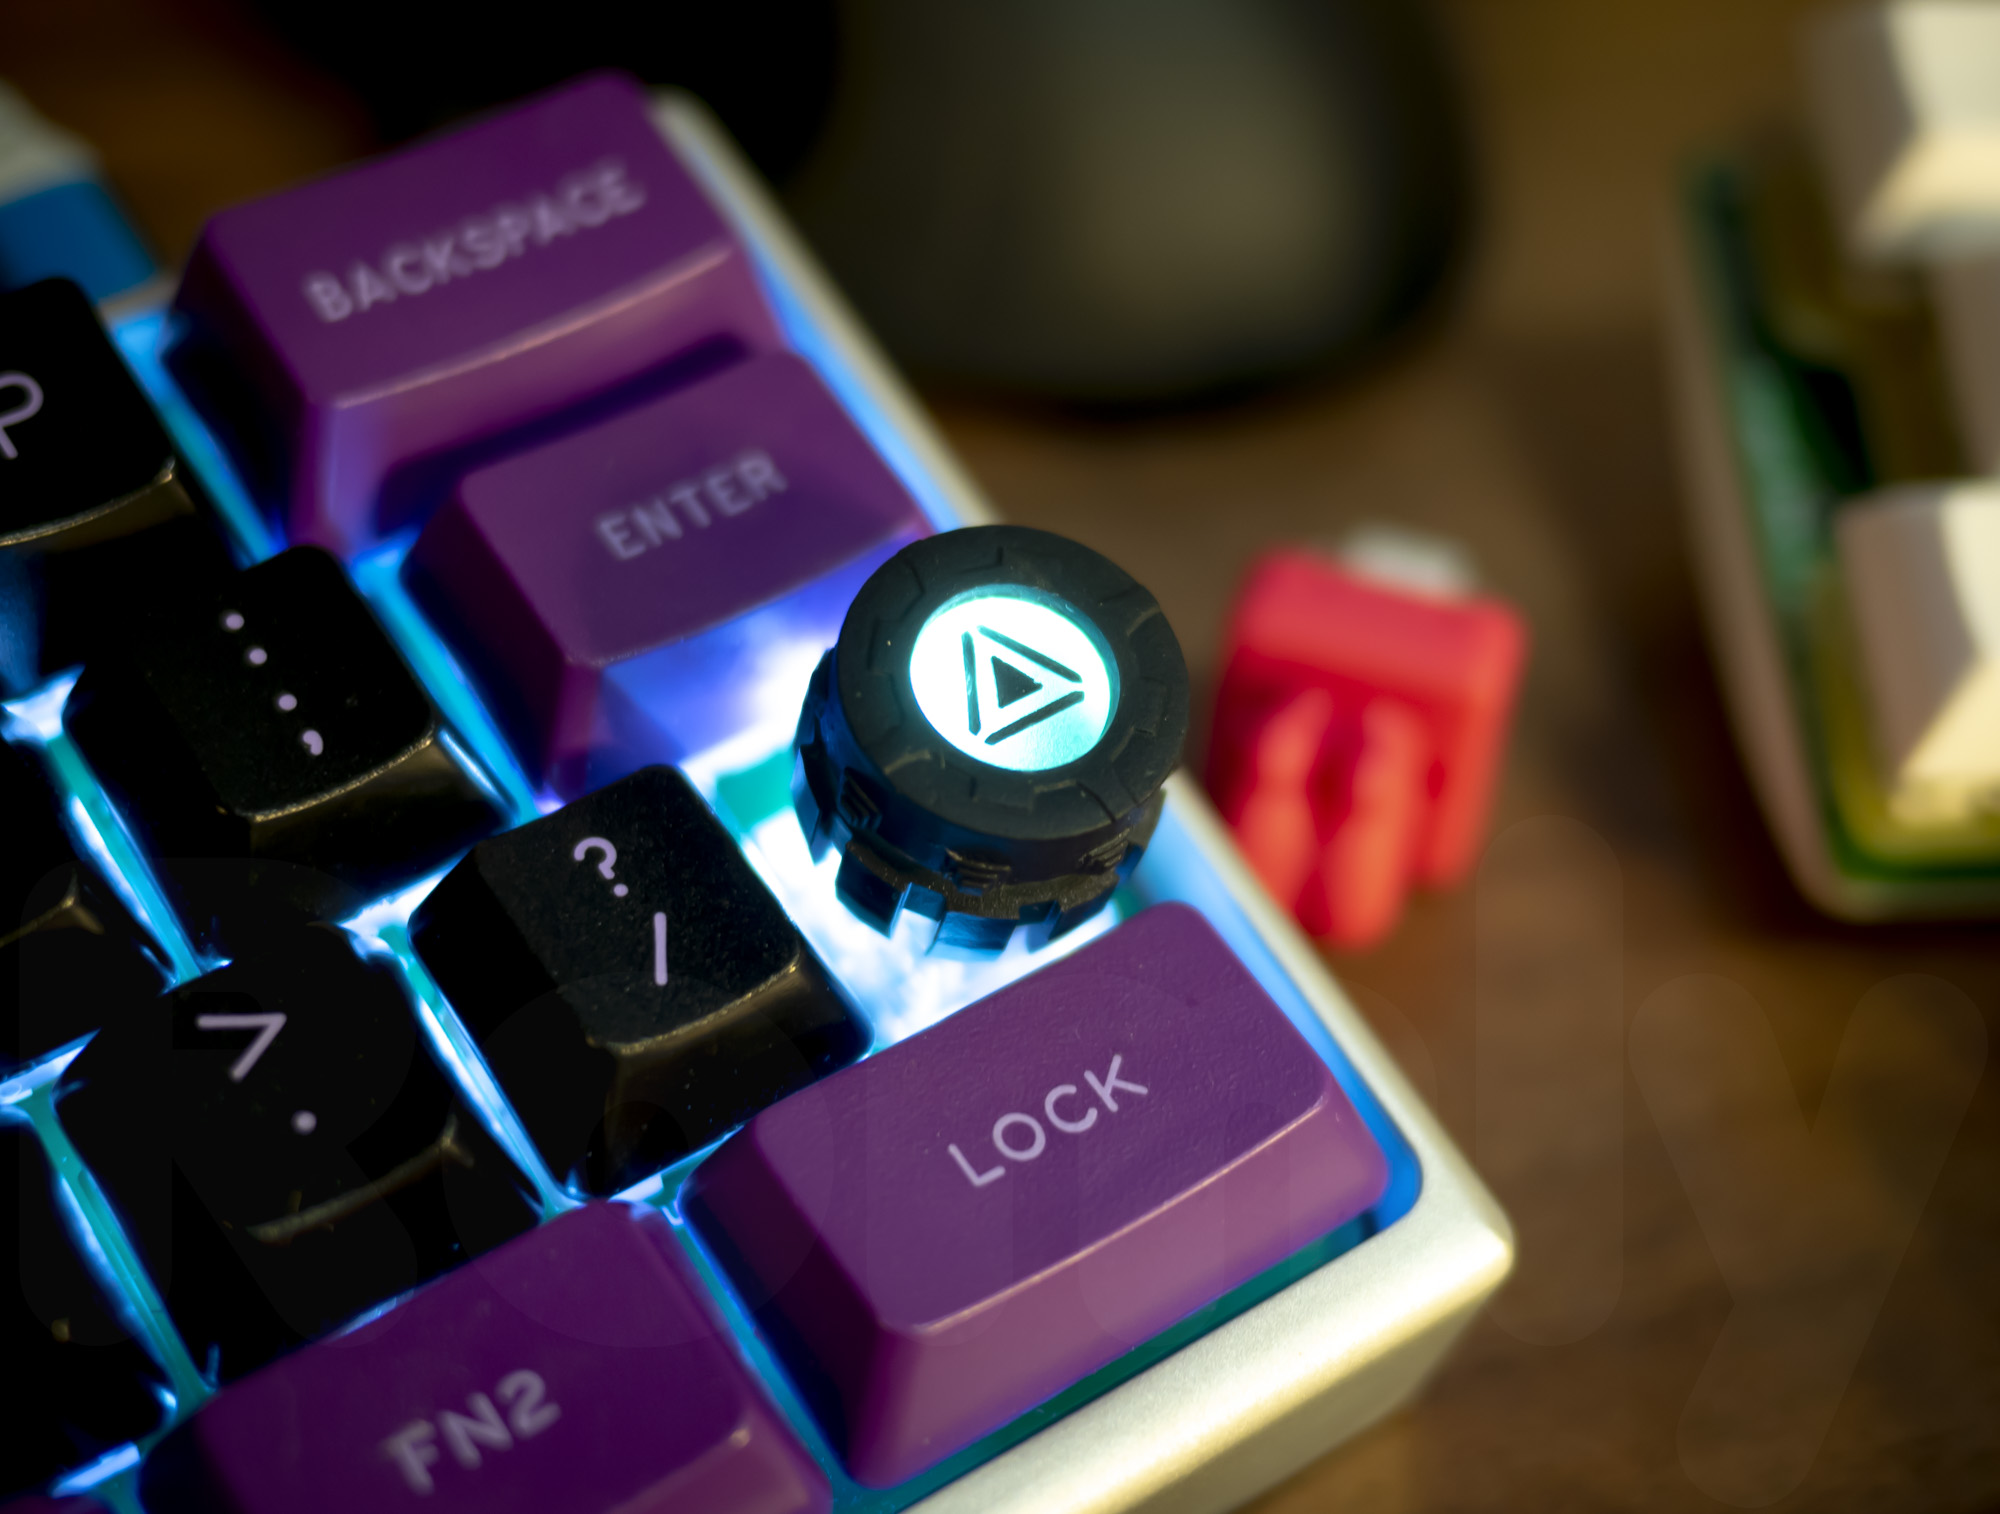 M.7 Spinning Core Artisan Keycap with LED